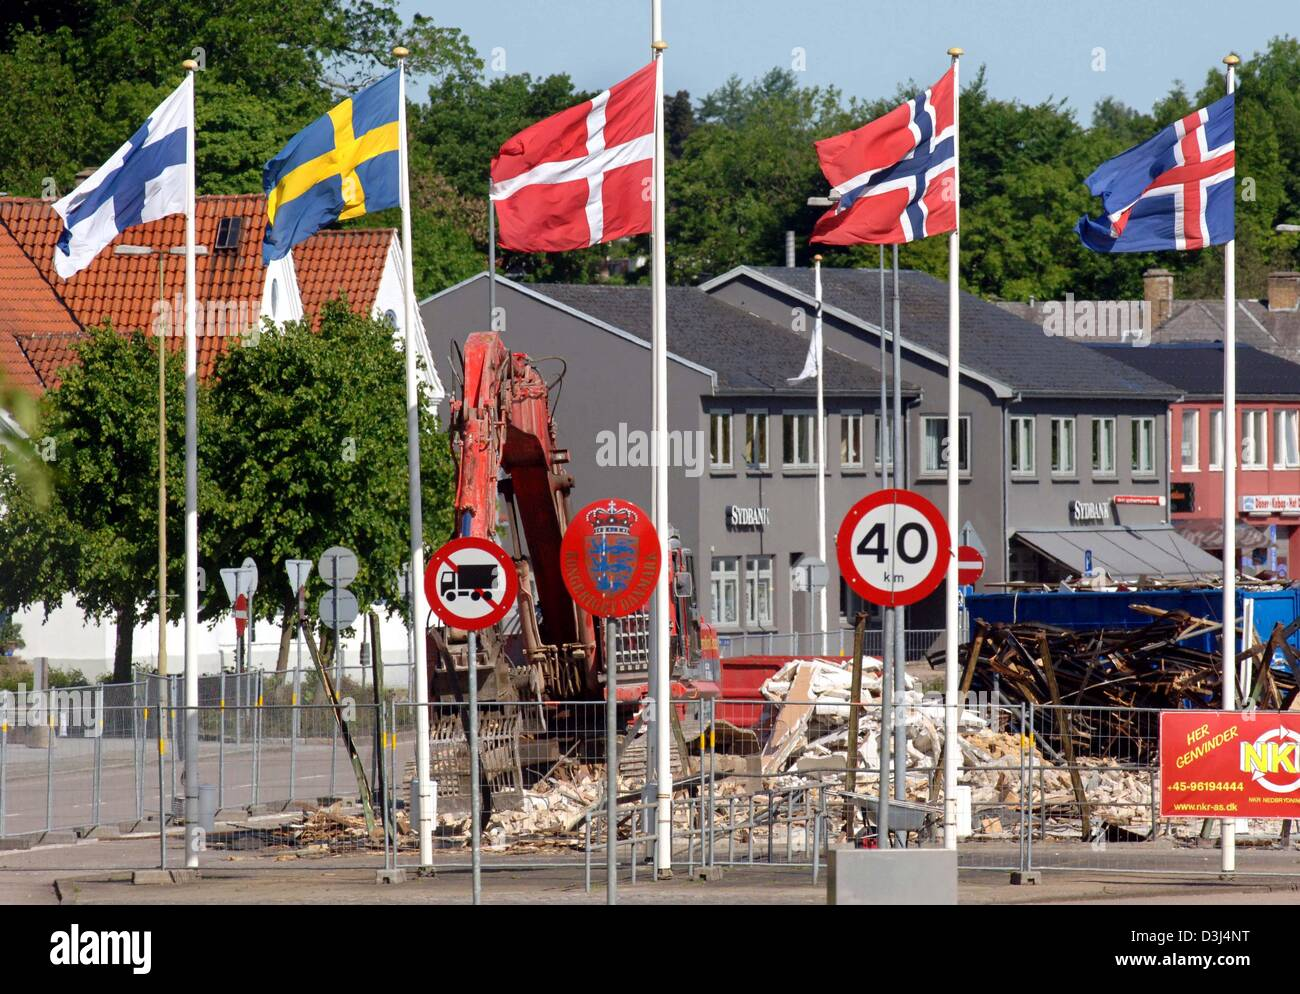 (dpa) - Danish builders demolish a checkpoint at the German-Danish border crossing in Flensburg, Germany, Tuesday, - Stock Image